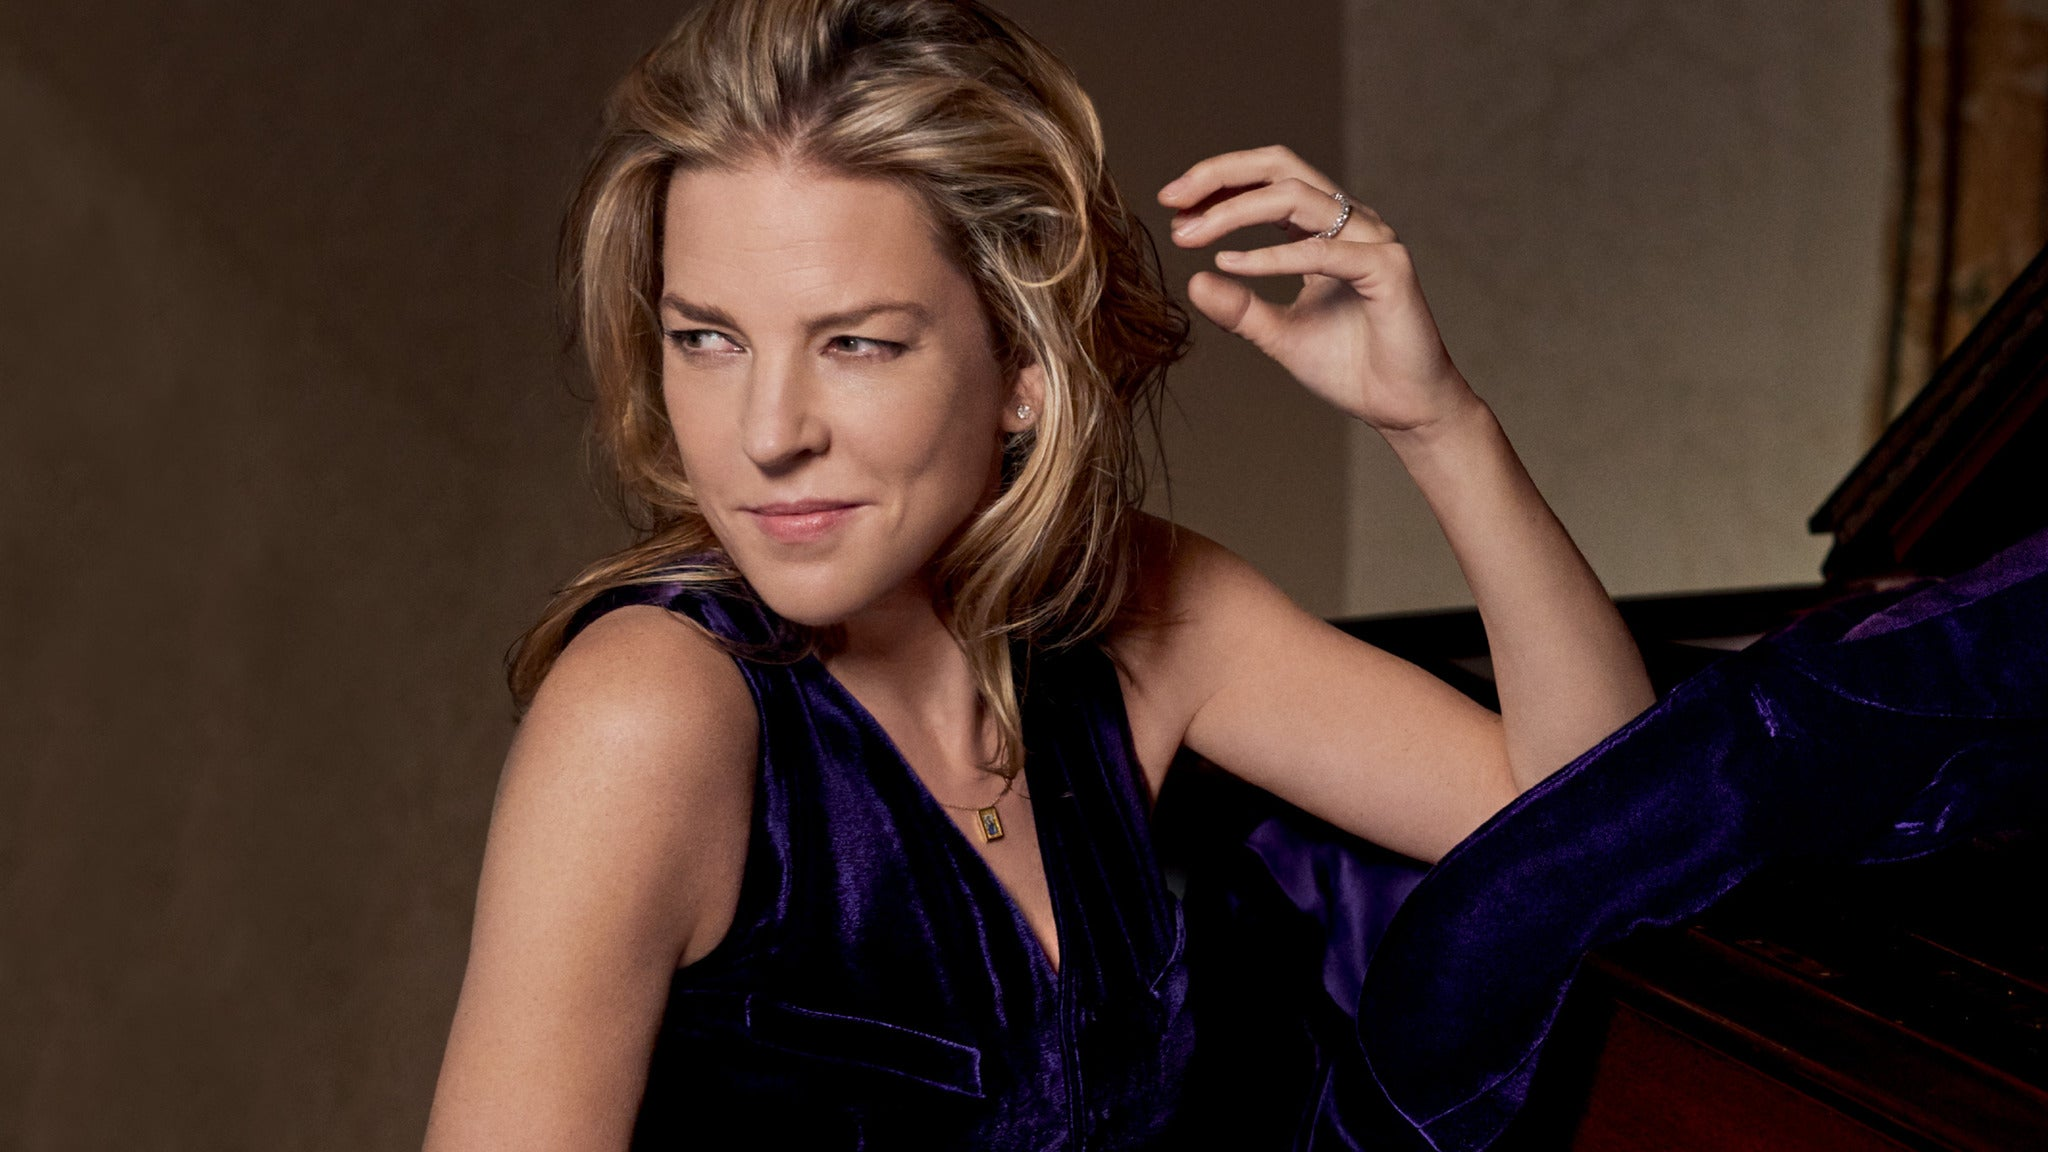 Diana Krall at Humphreys Concerts By the Bay